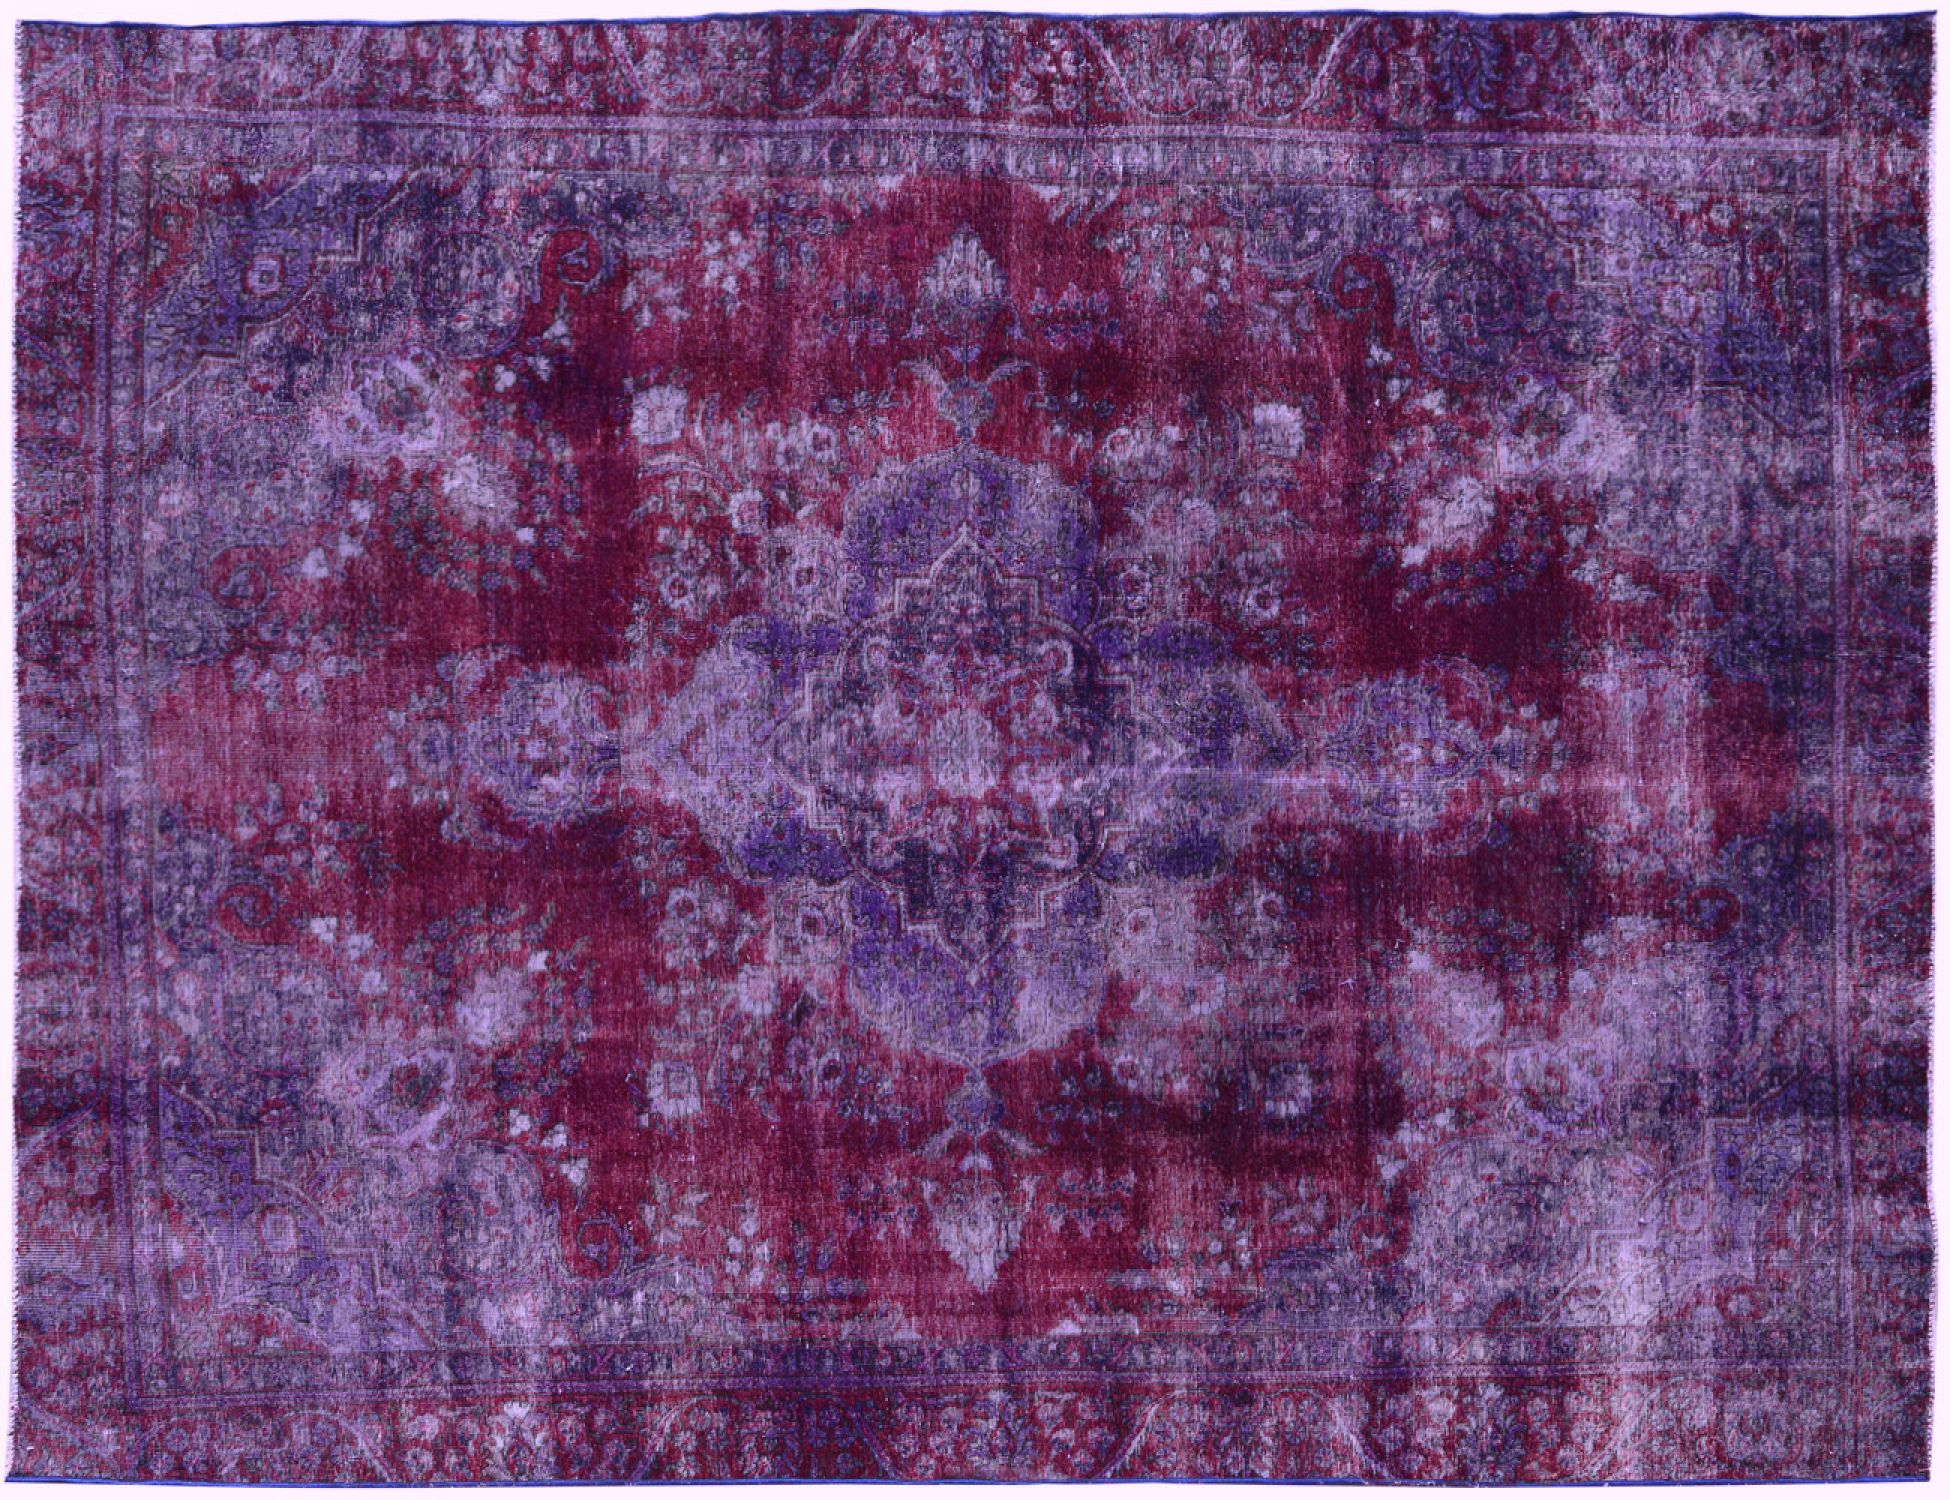 Vintage Carpet  purple <br/>360 x 260 cm